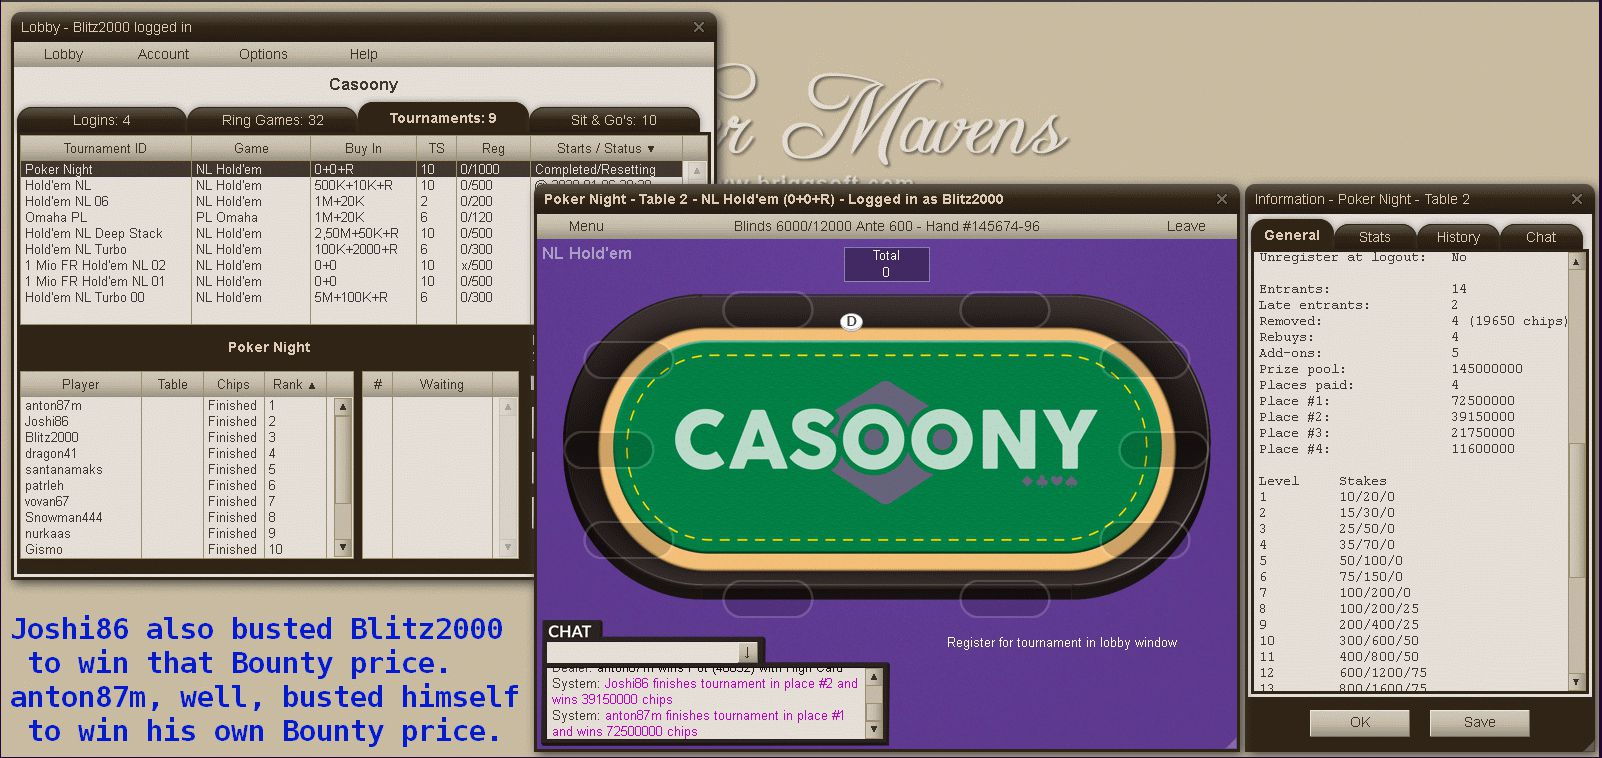 Casoony_Poker_Lobby-PokerNight_20200105_2139_3RDPLACE_SHOW.gif